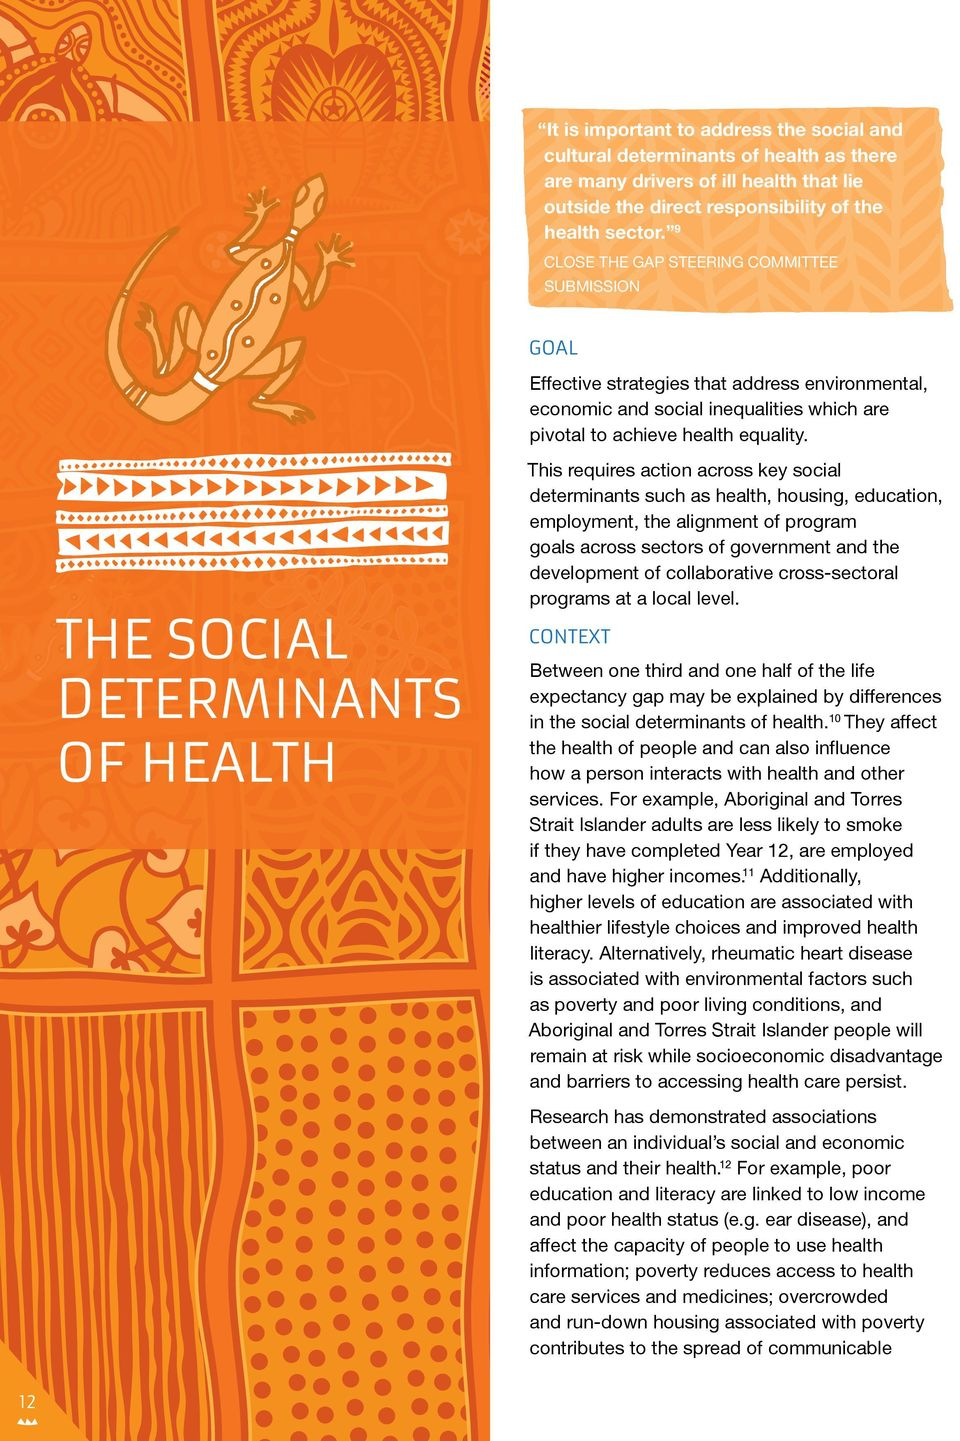 The social determinants of health This requires action across key social determinants such as health, housing, education, employment, the alignment of program goals across sectors of government and